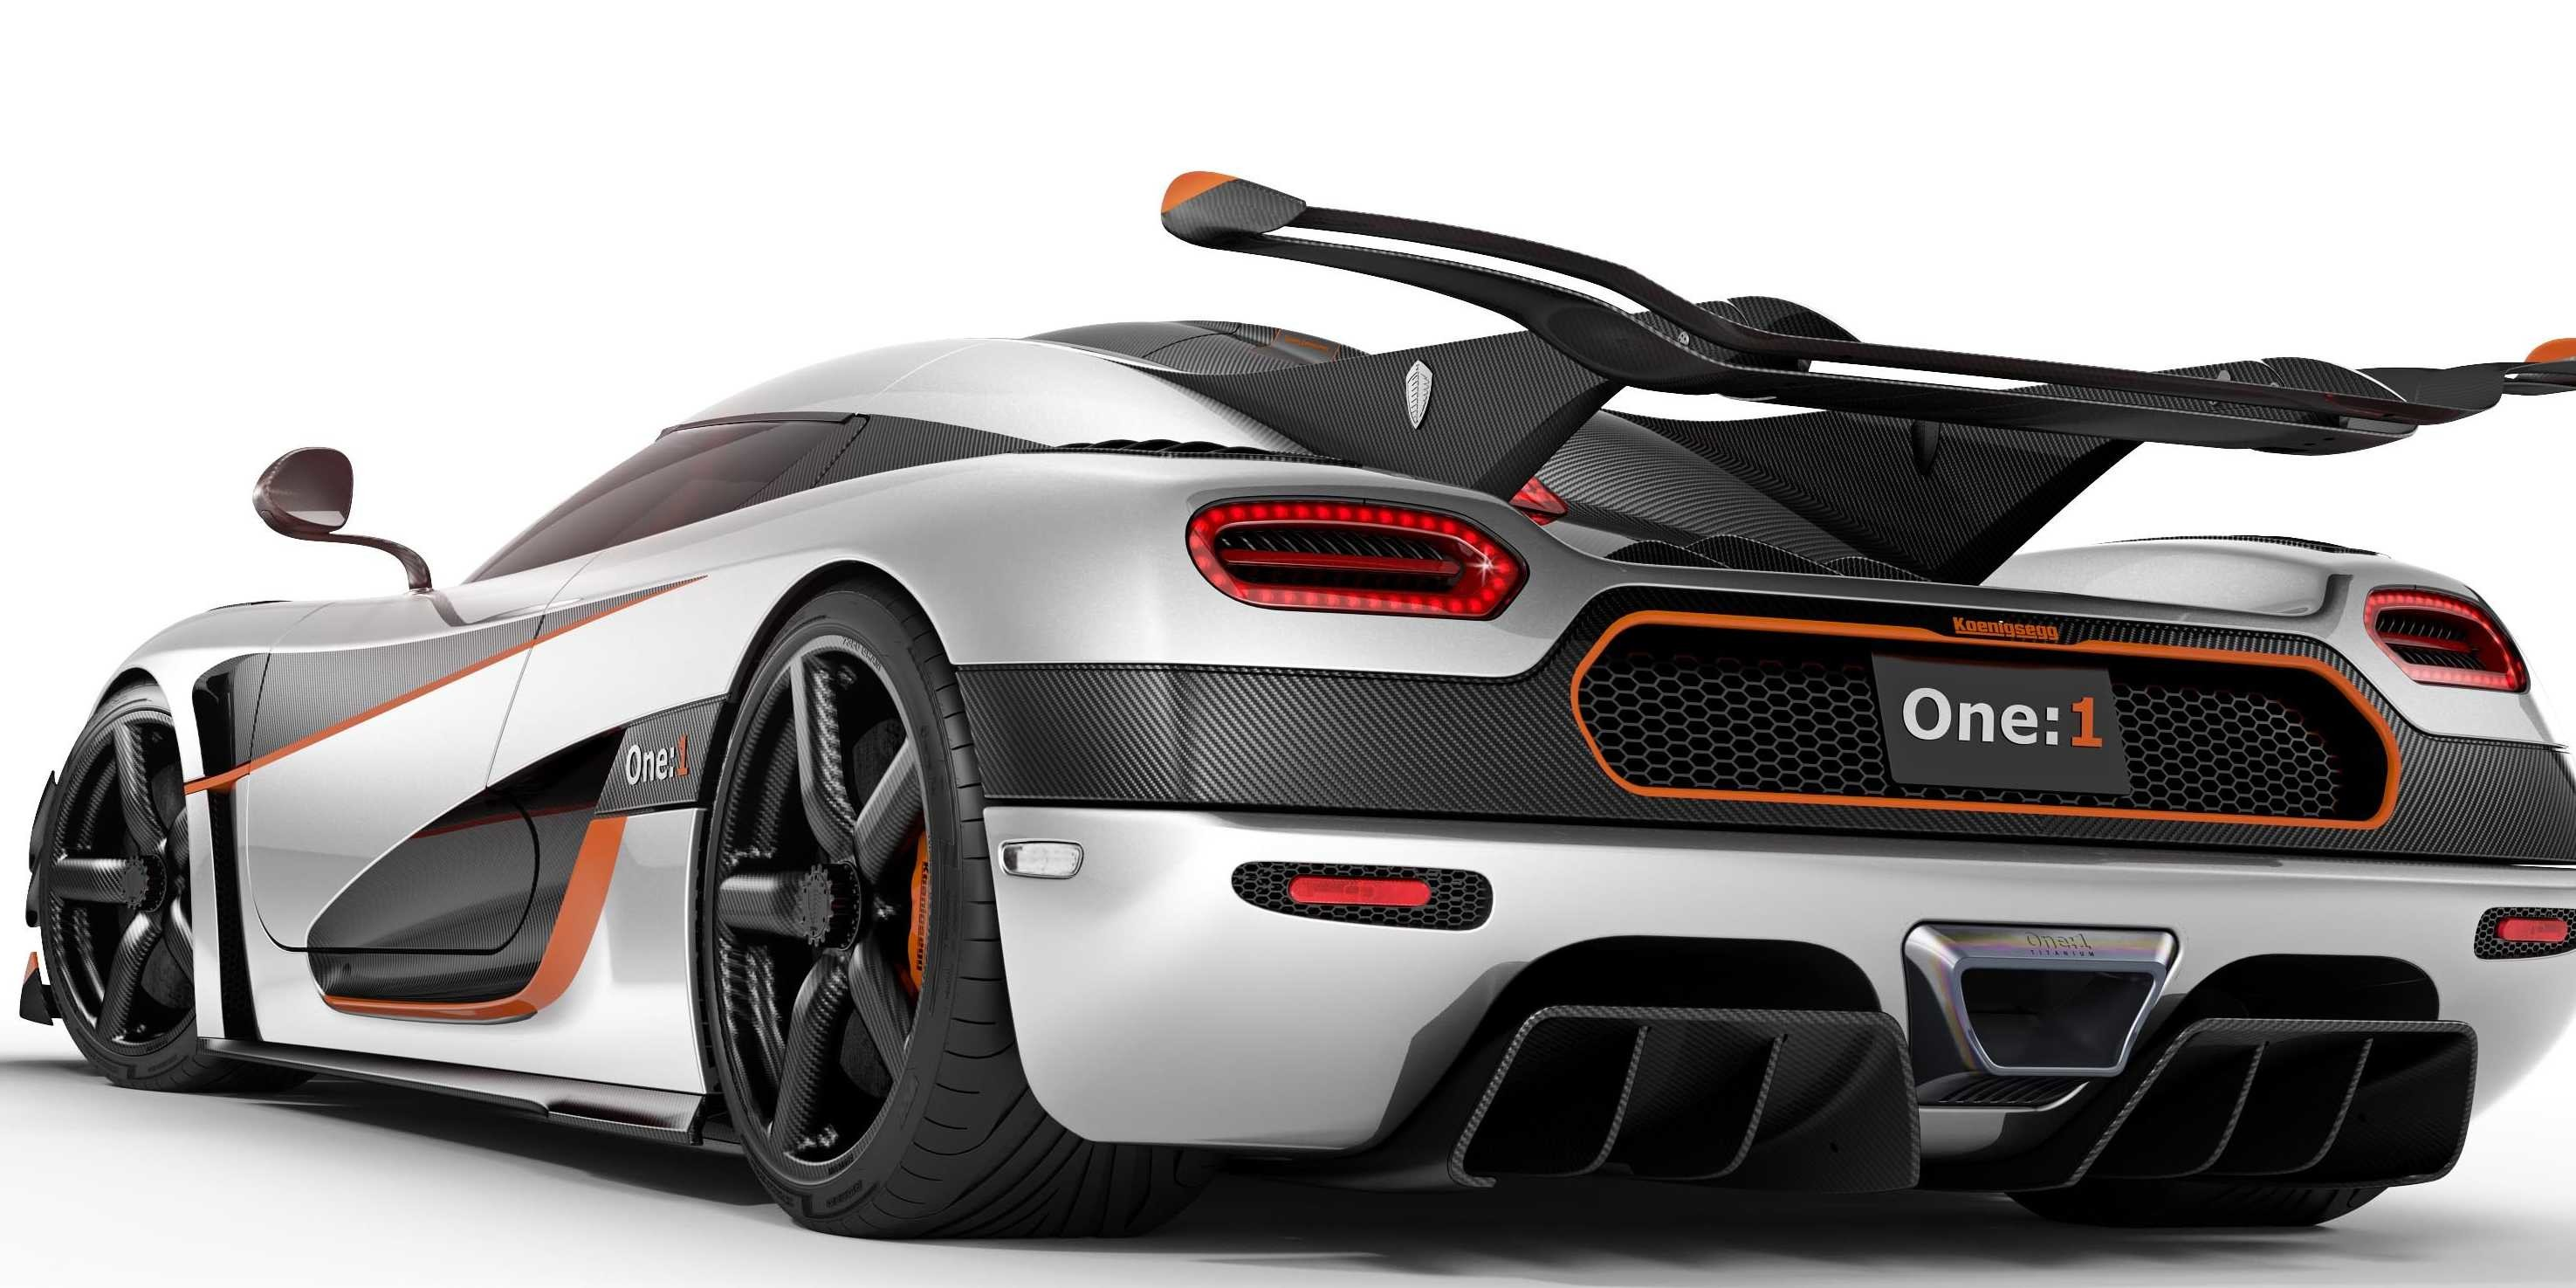 Fastest Car In The World Wallpaper 68 Images